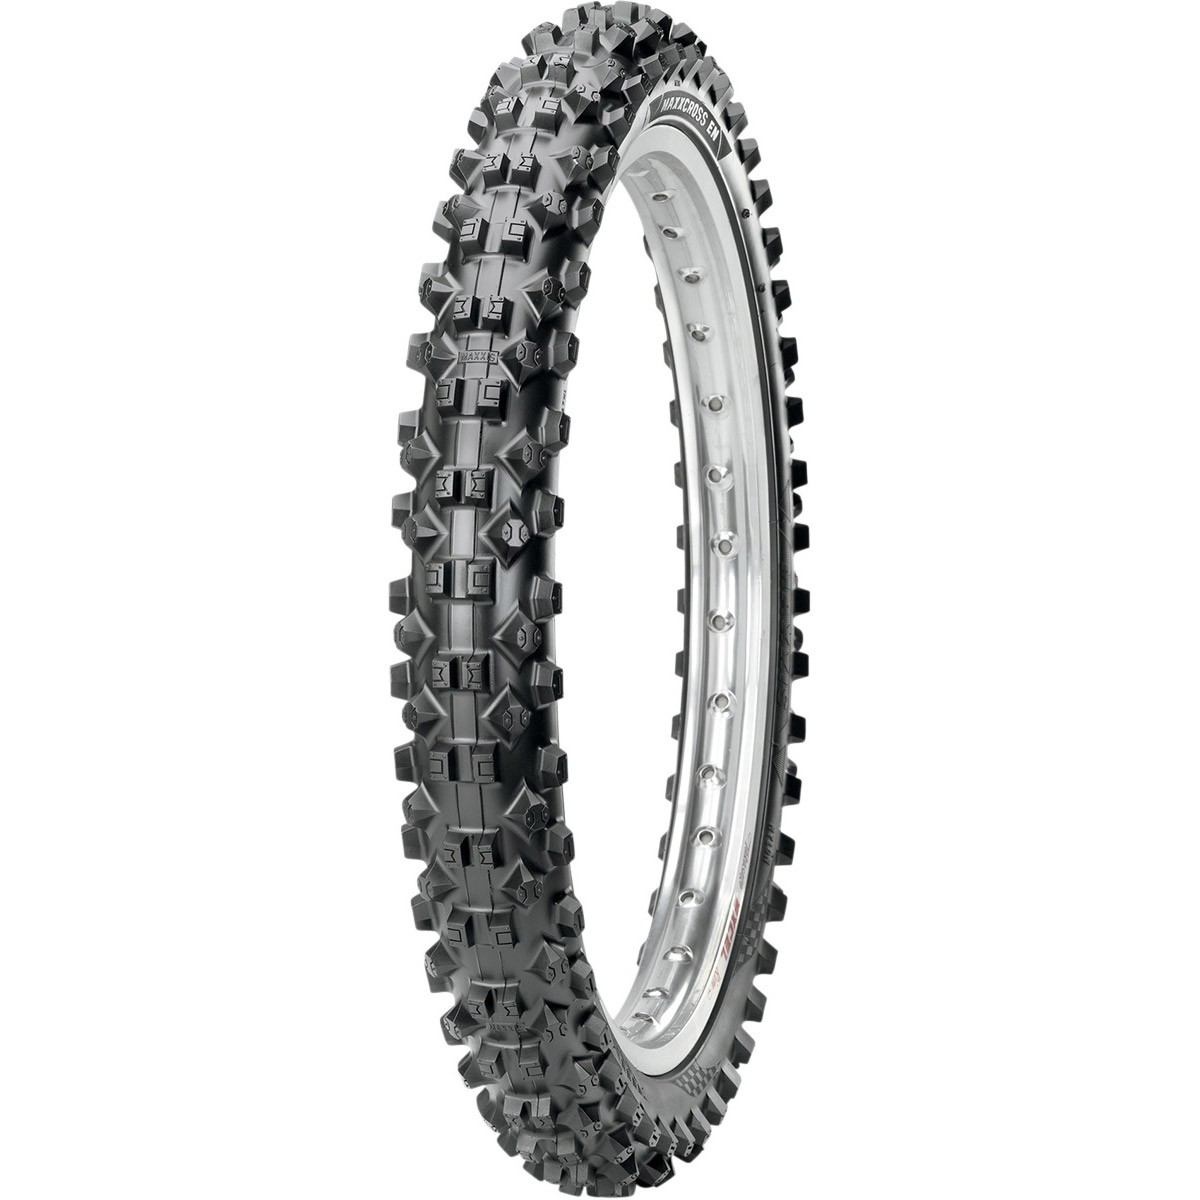 Gomme Nuove Maxxis 90/90 -21 54R MAXXCROSS EN M7313 NHS pneumatici nuovi Estivo